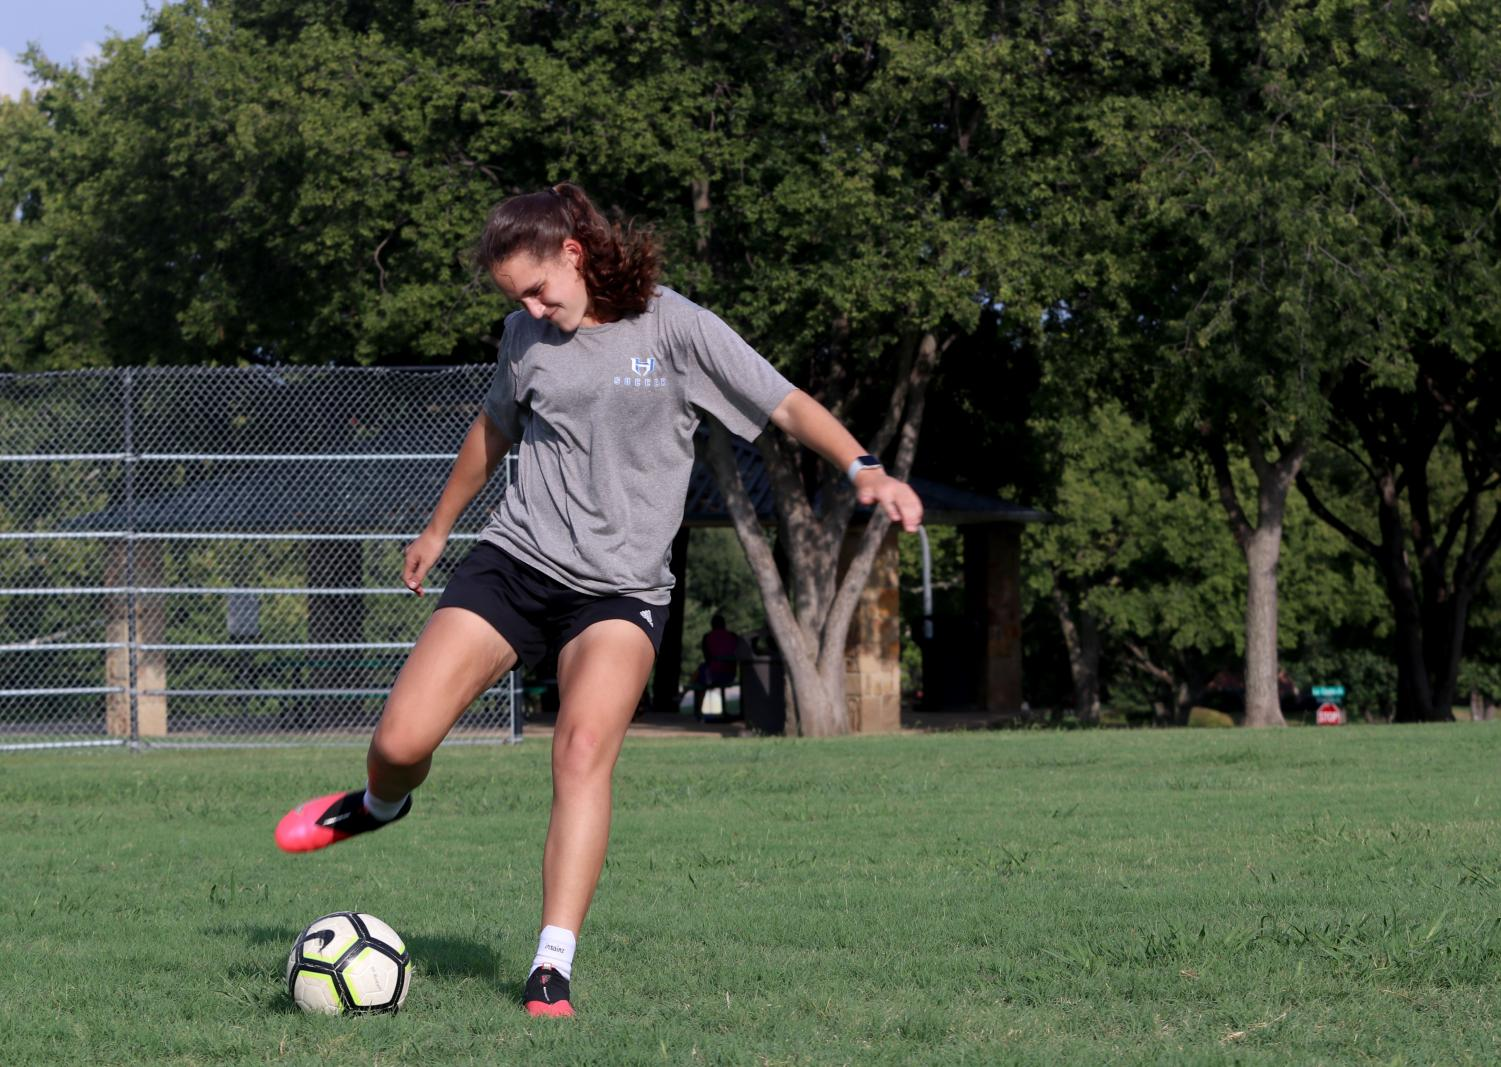 Junior Weslyn Brown practices soccer after school on September 17.  Brown has been reaching out to college coaches for recruitment for several months now.